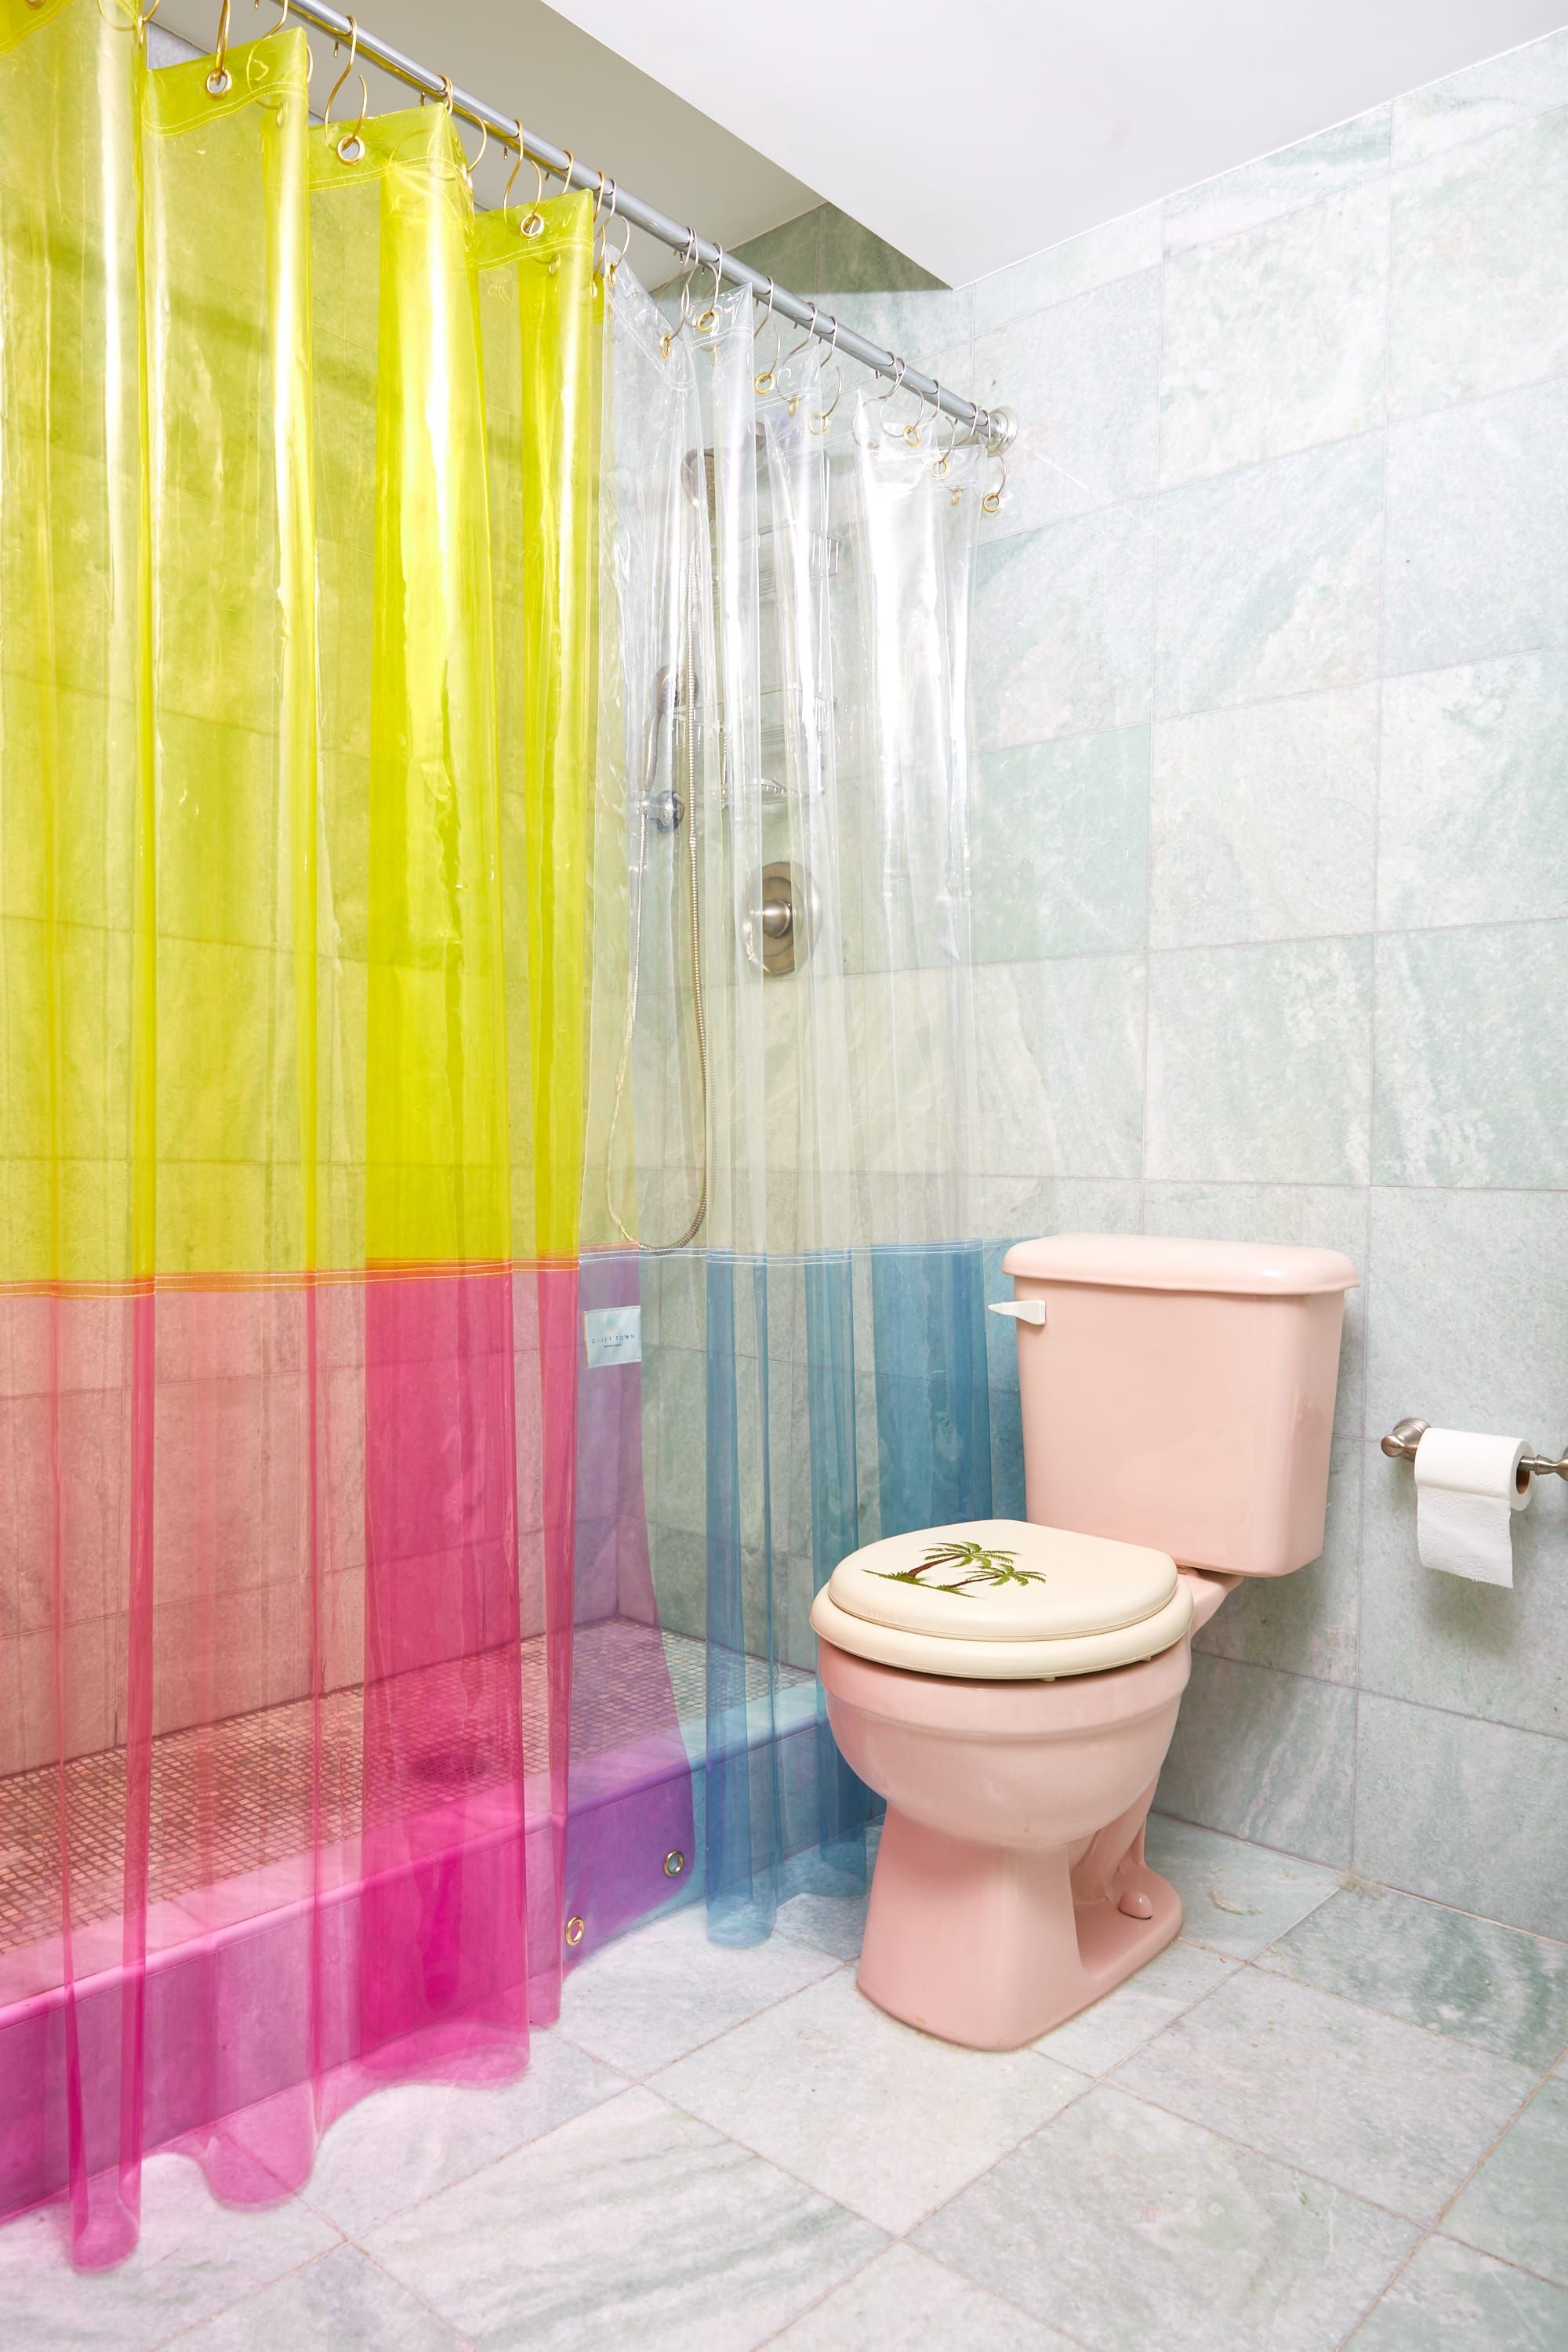 The 26 Best Shower Curtains For Every Personality Type Cool Shower Curtains Target Shower Curtains Two Shower Curtains